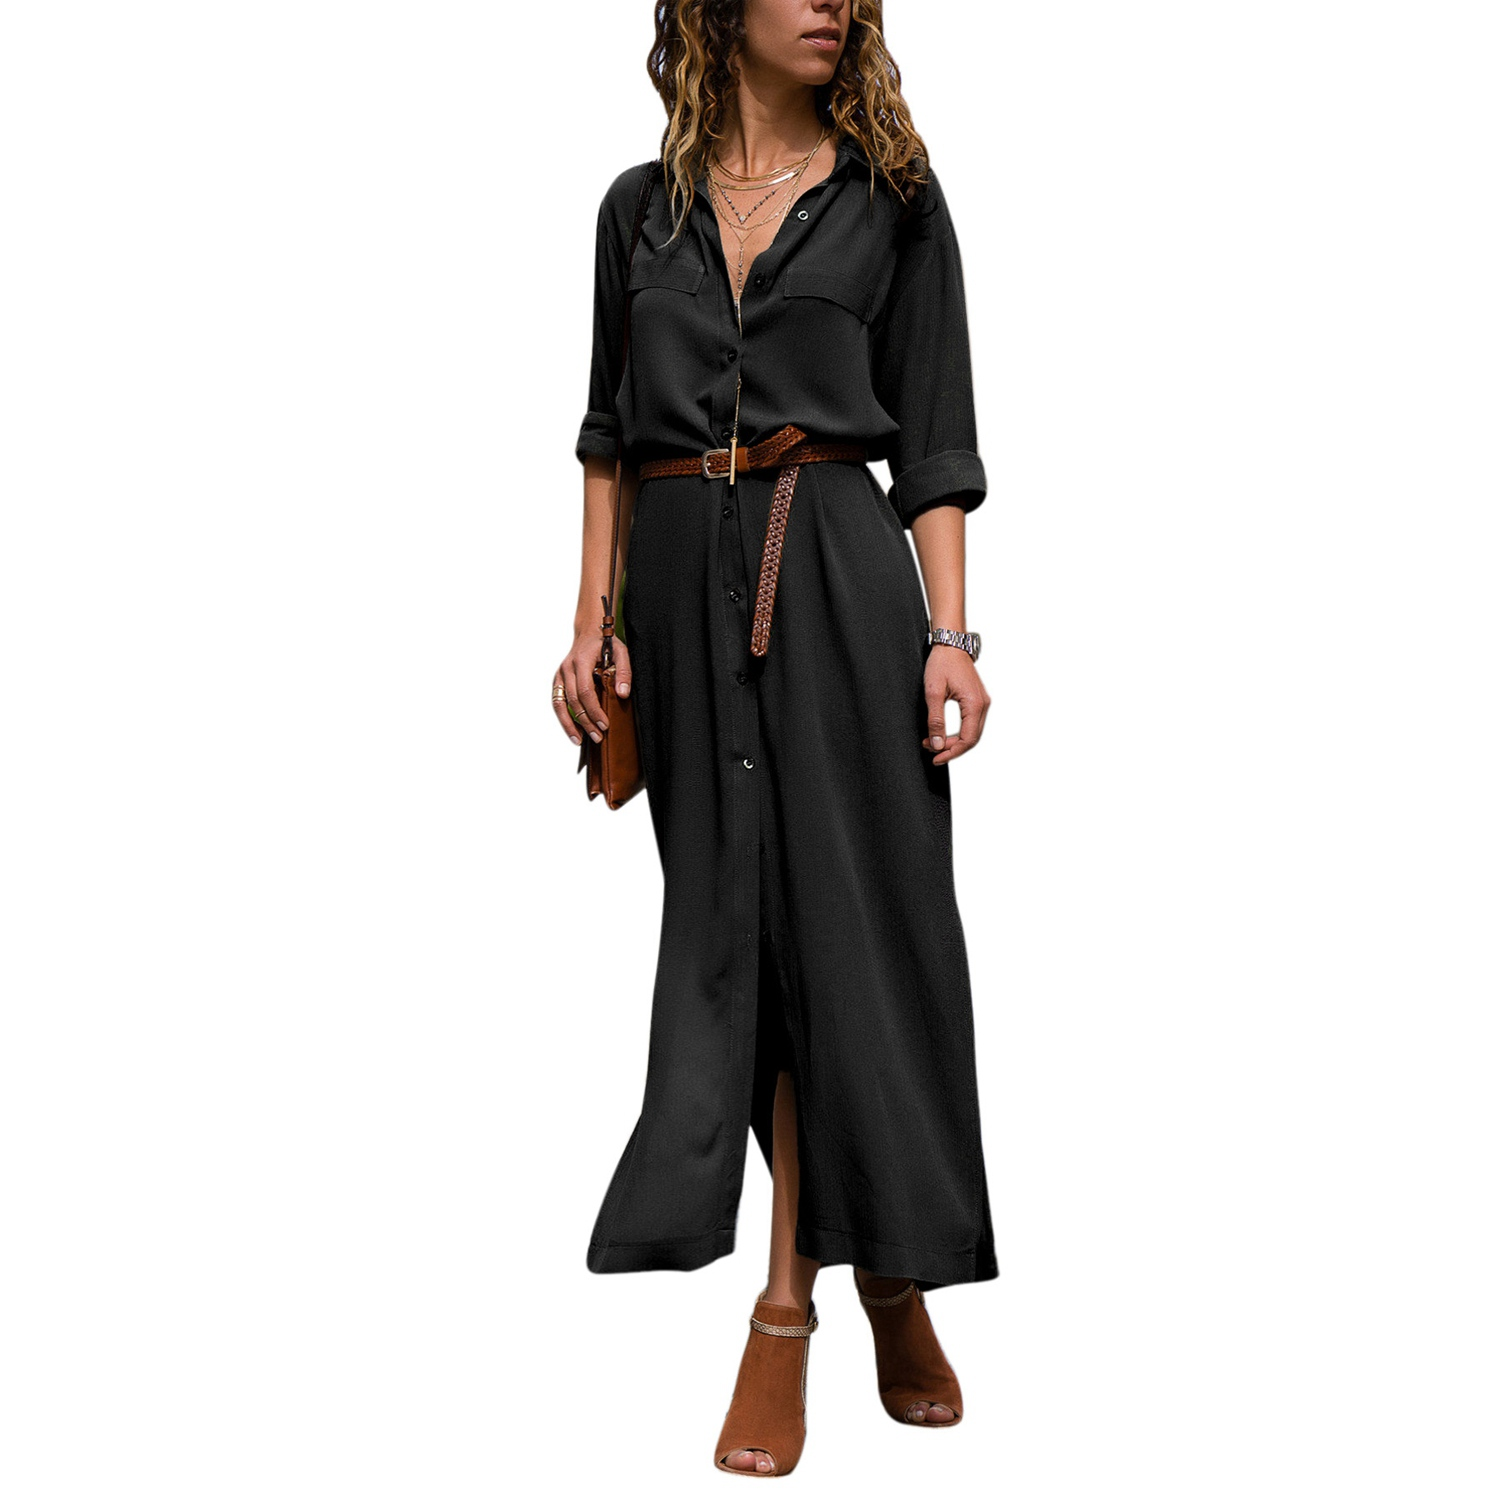 Women Lapel Long Sleeve Button Shirt Maxi Dress Casual Loose Solid Color Slit Long Shirt Dress